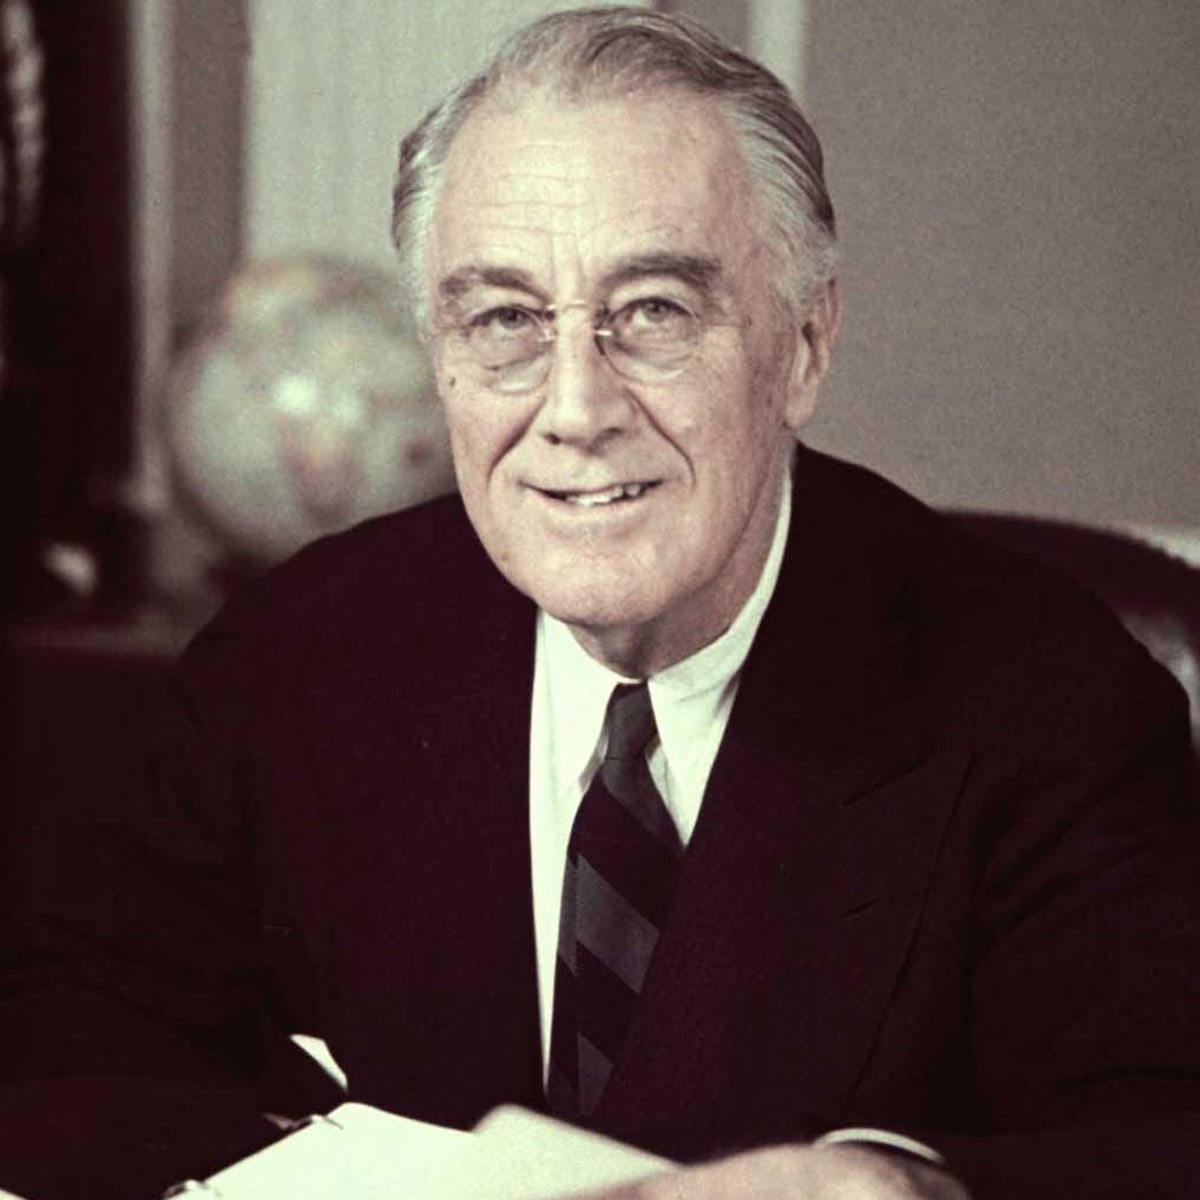 How FDR Served Four Terms as U.S. President - HISTORY